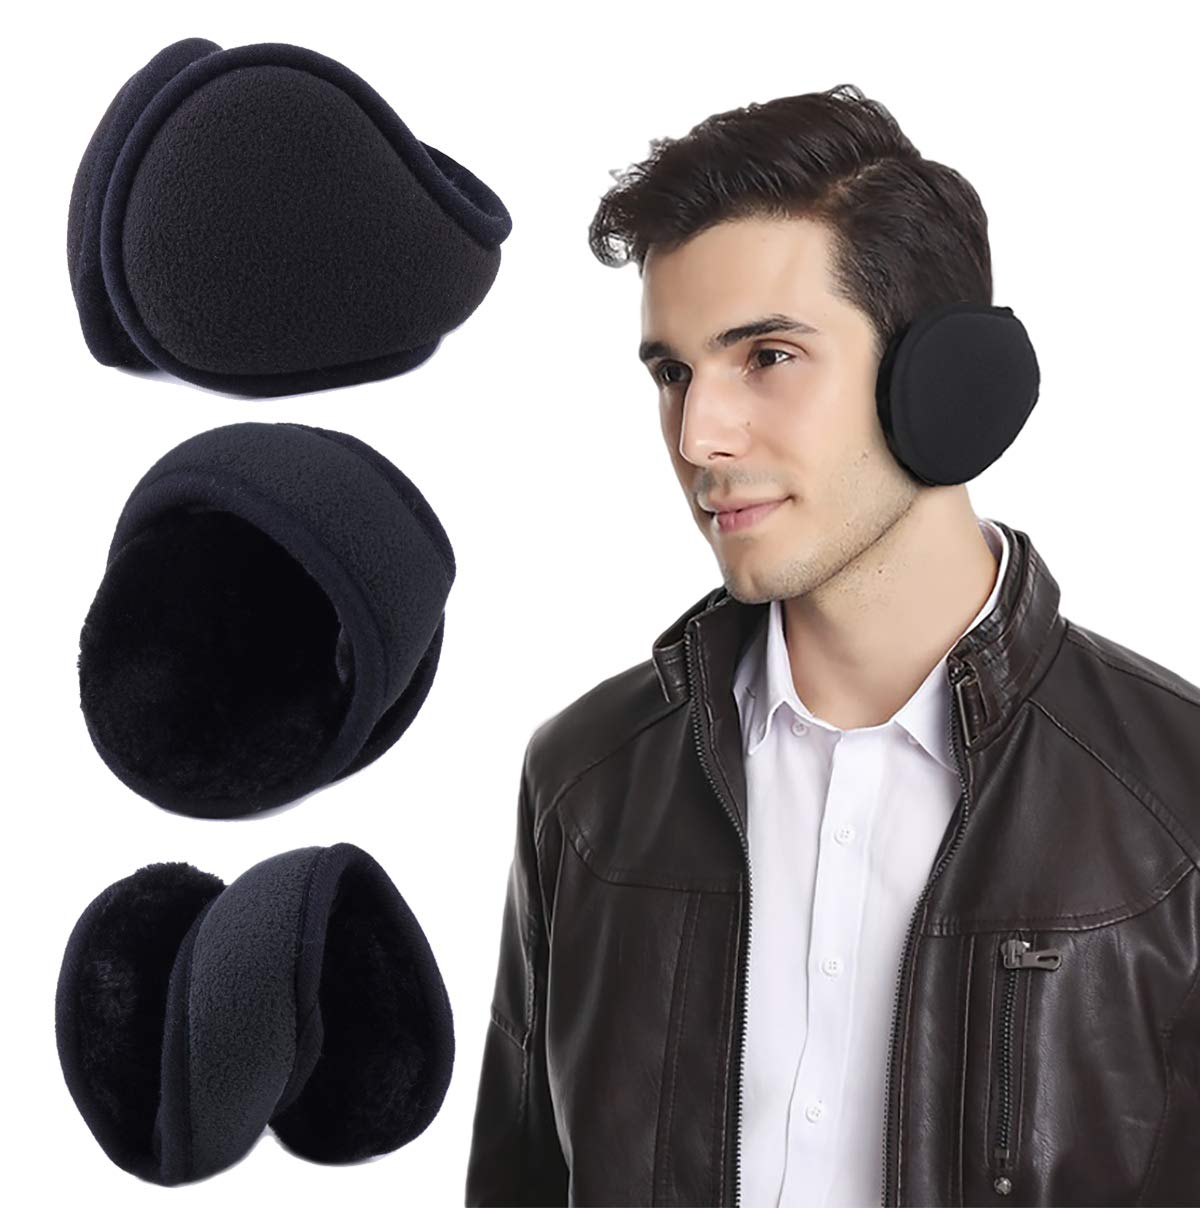 Eianru Polar Fleece Ear Cover Foldable Wrap Winter Accessory Outdoor EarMuffs (One size, Black A)